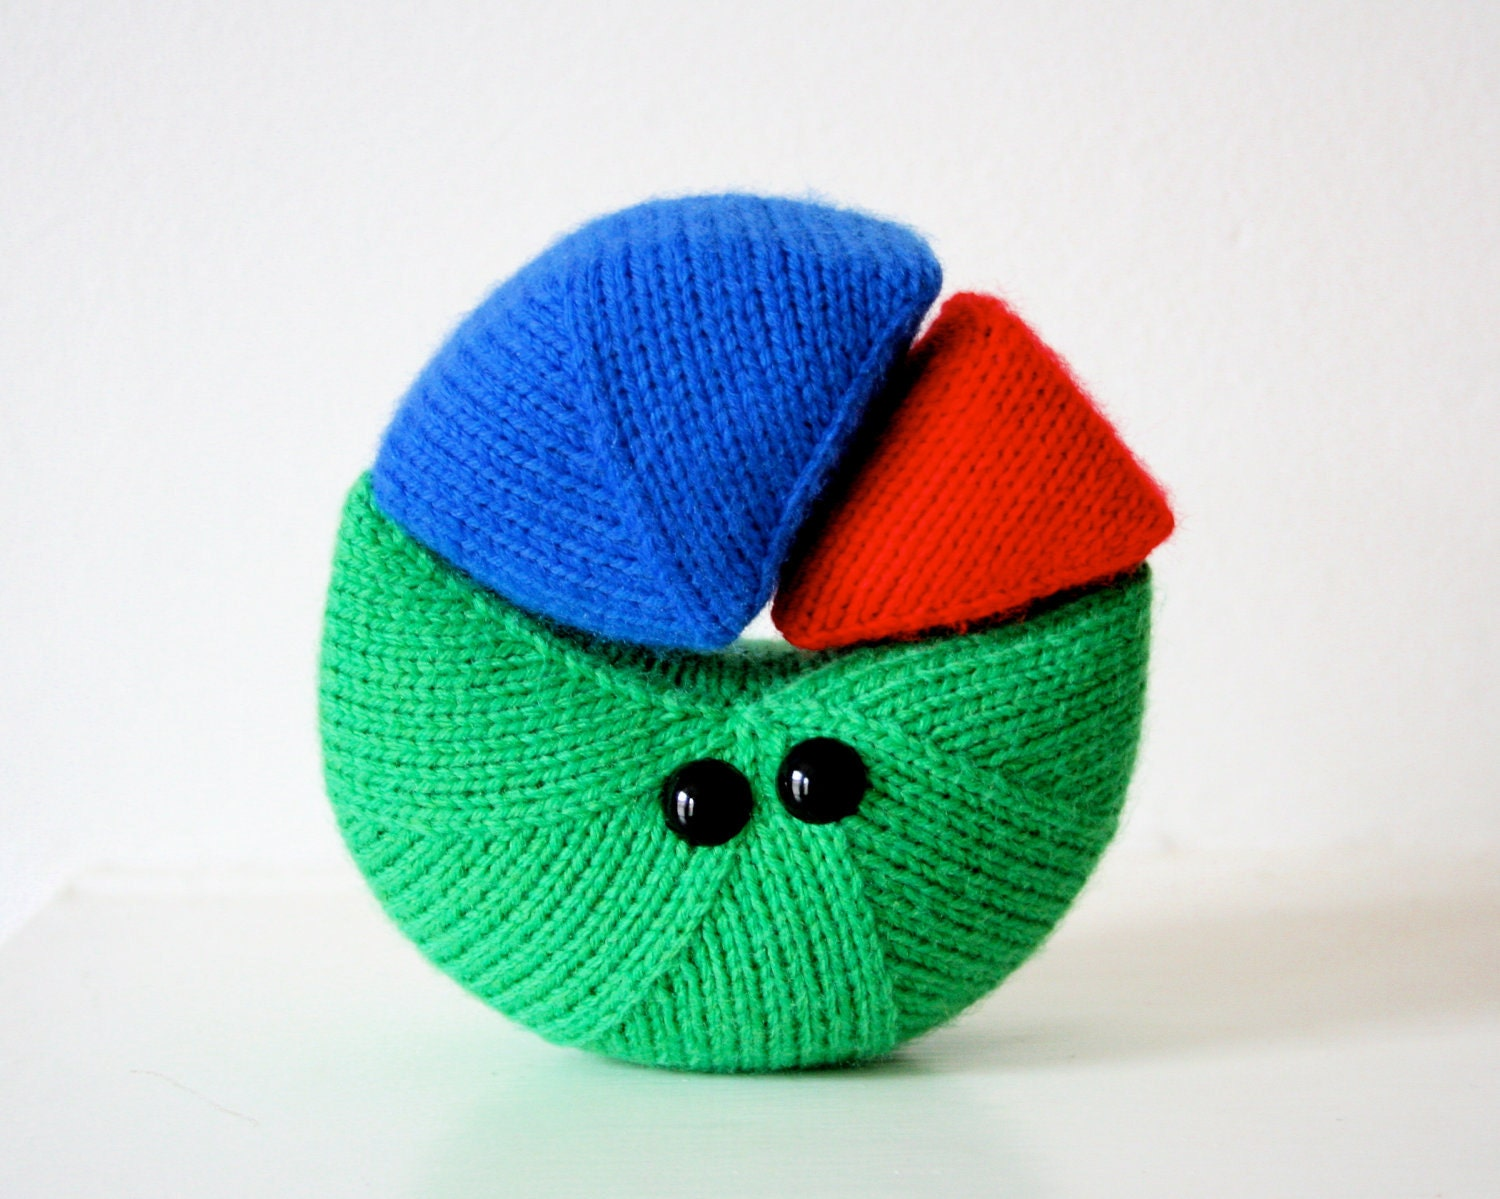 Cutie pie chart red green blue zoom nvjuhfo Image collections